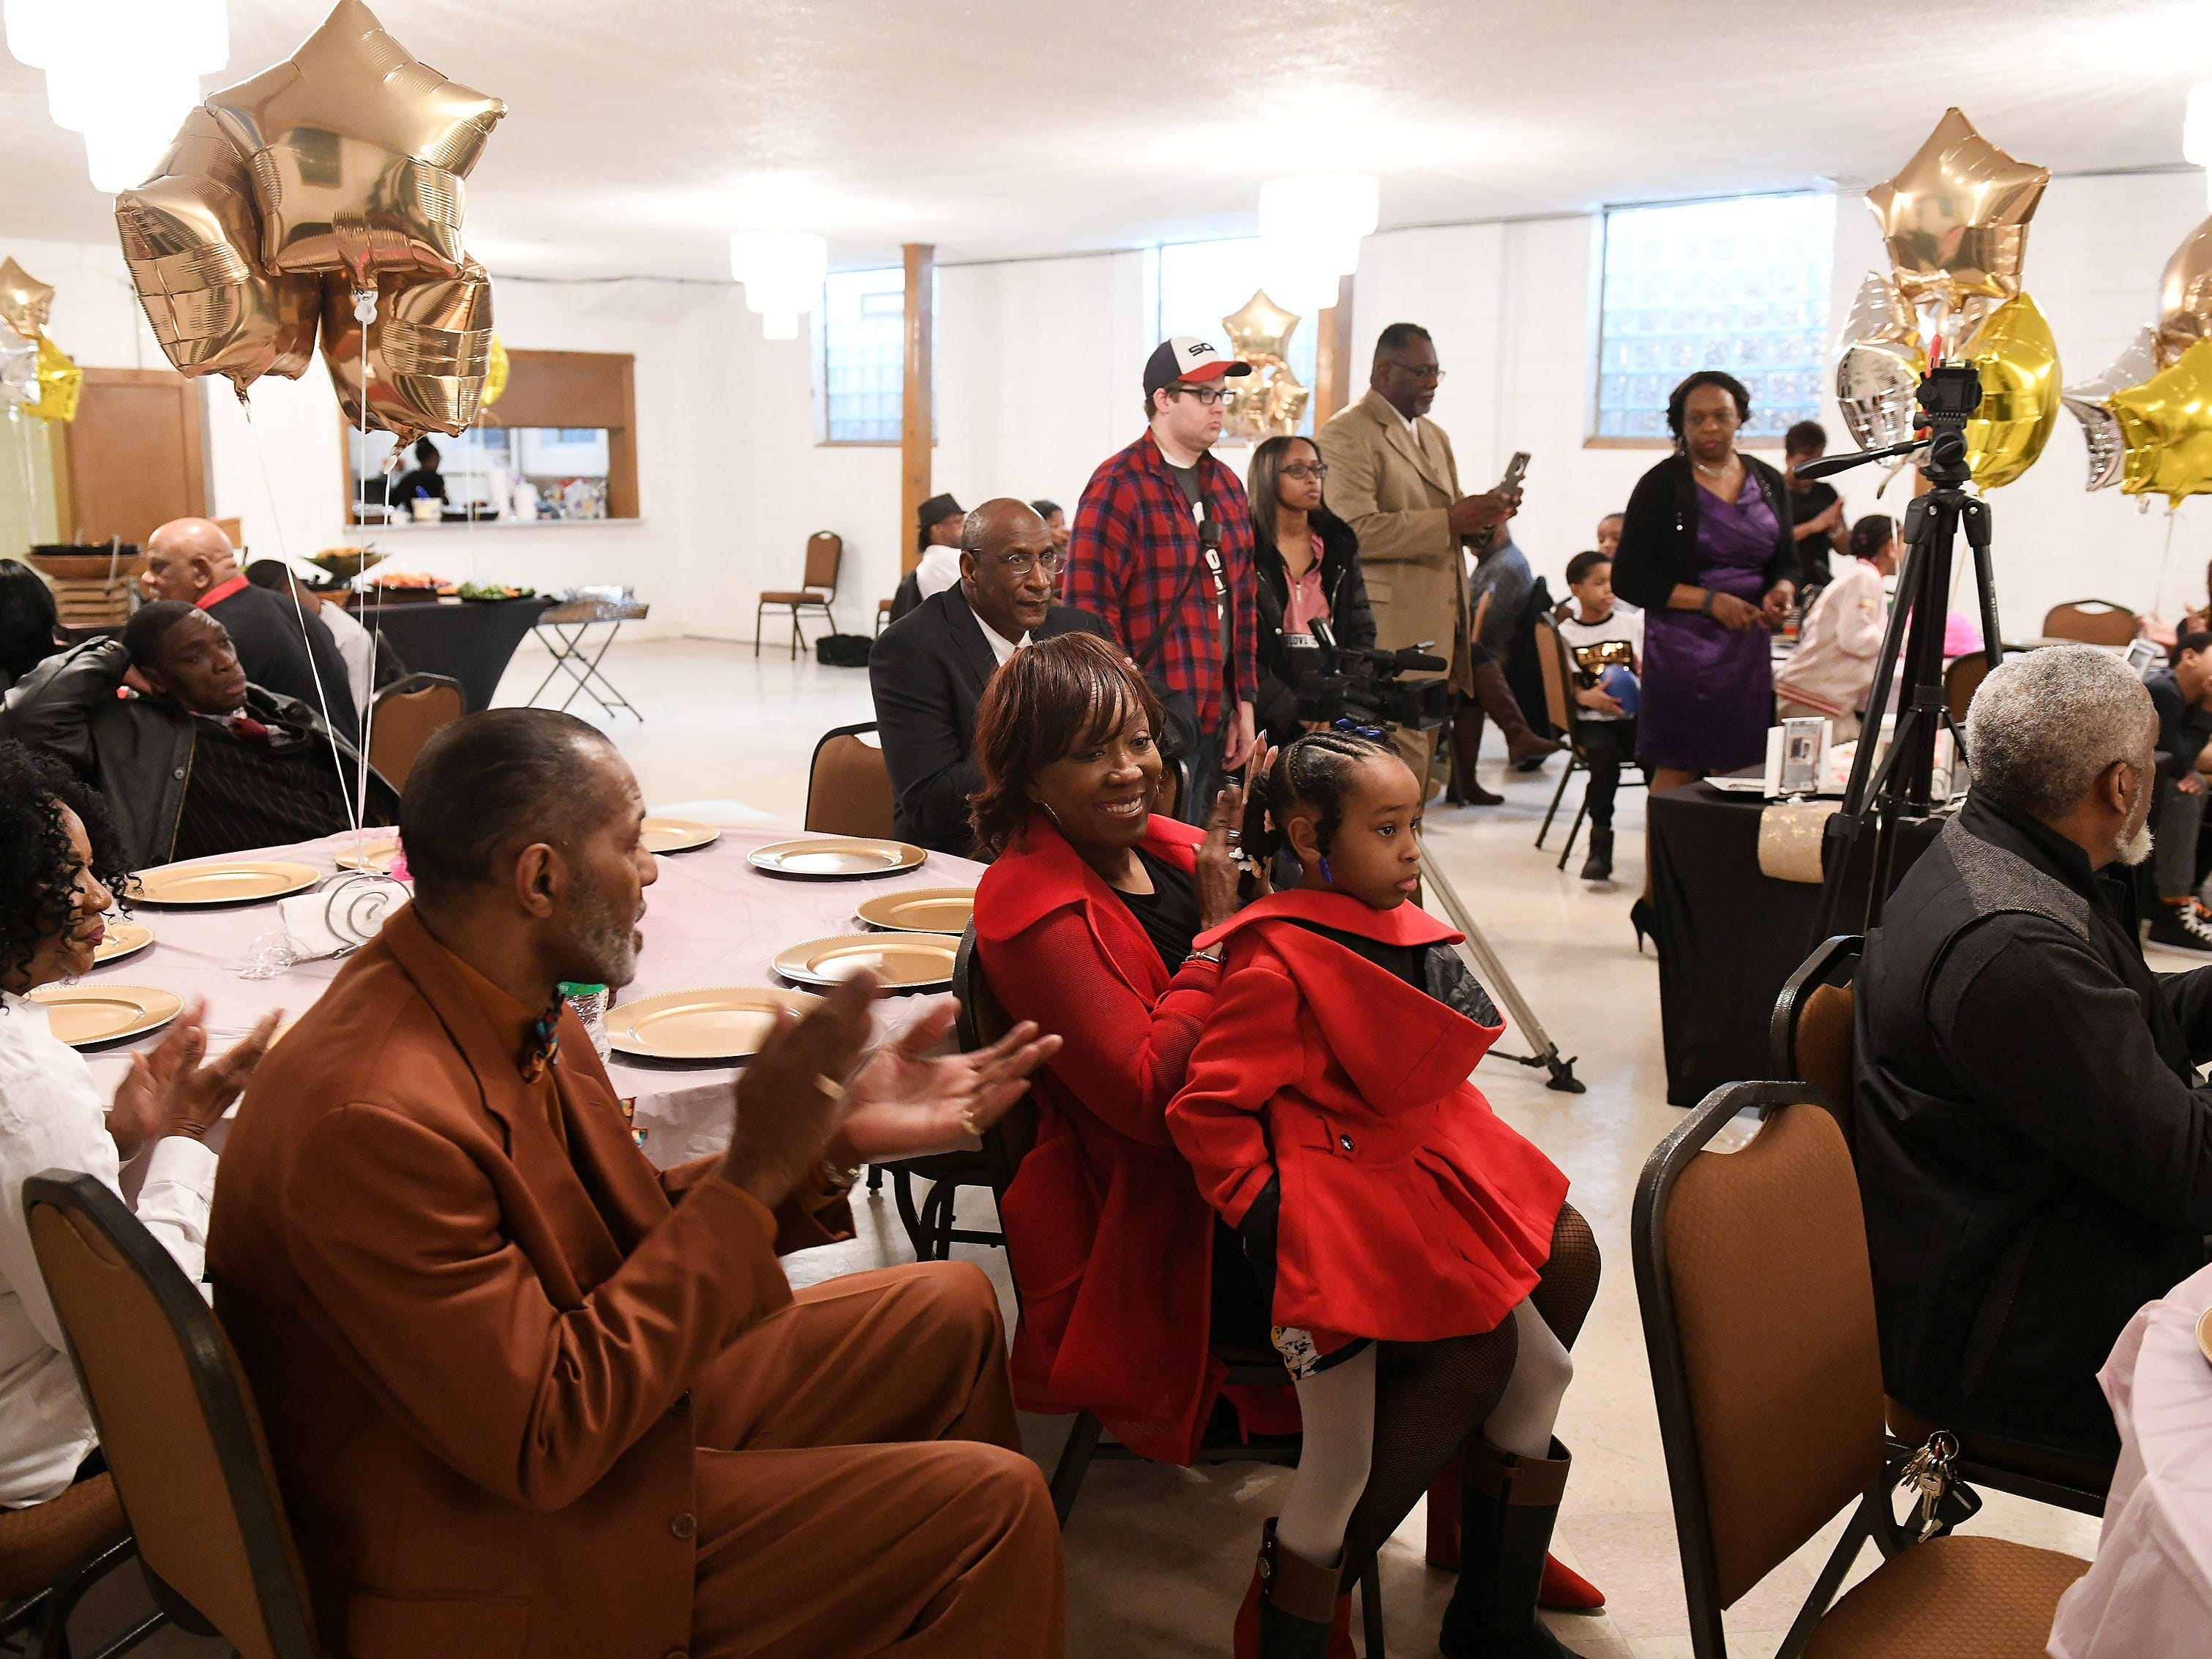 Attendees including, Don J. Griffin II, left,  and Evelyn Williams with her granddaughter, Kimiya Williams, applaud at the birthday celebration for Lois Holden.